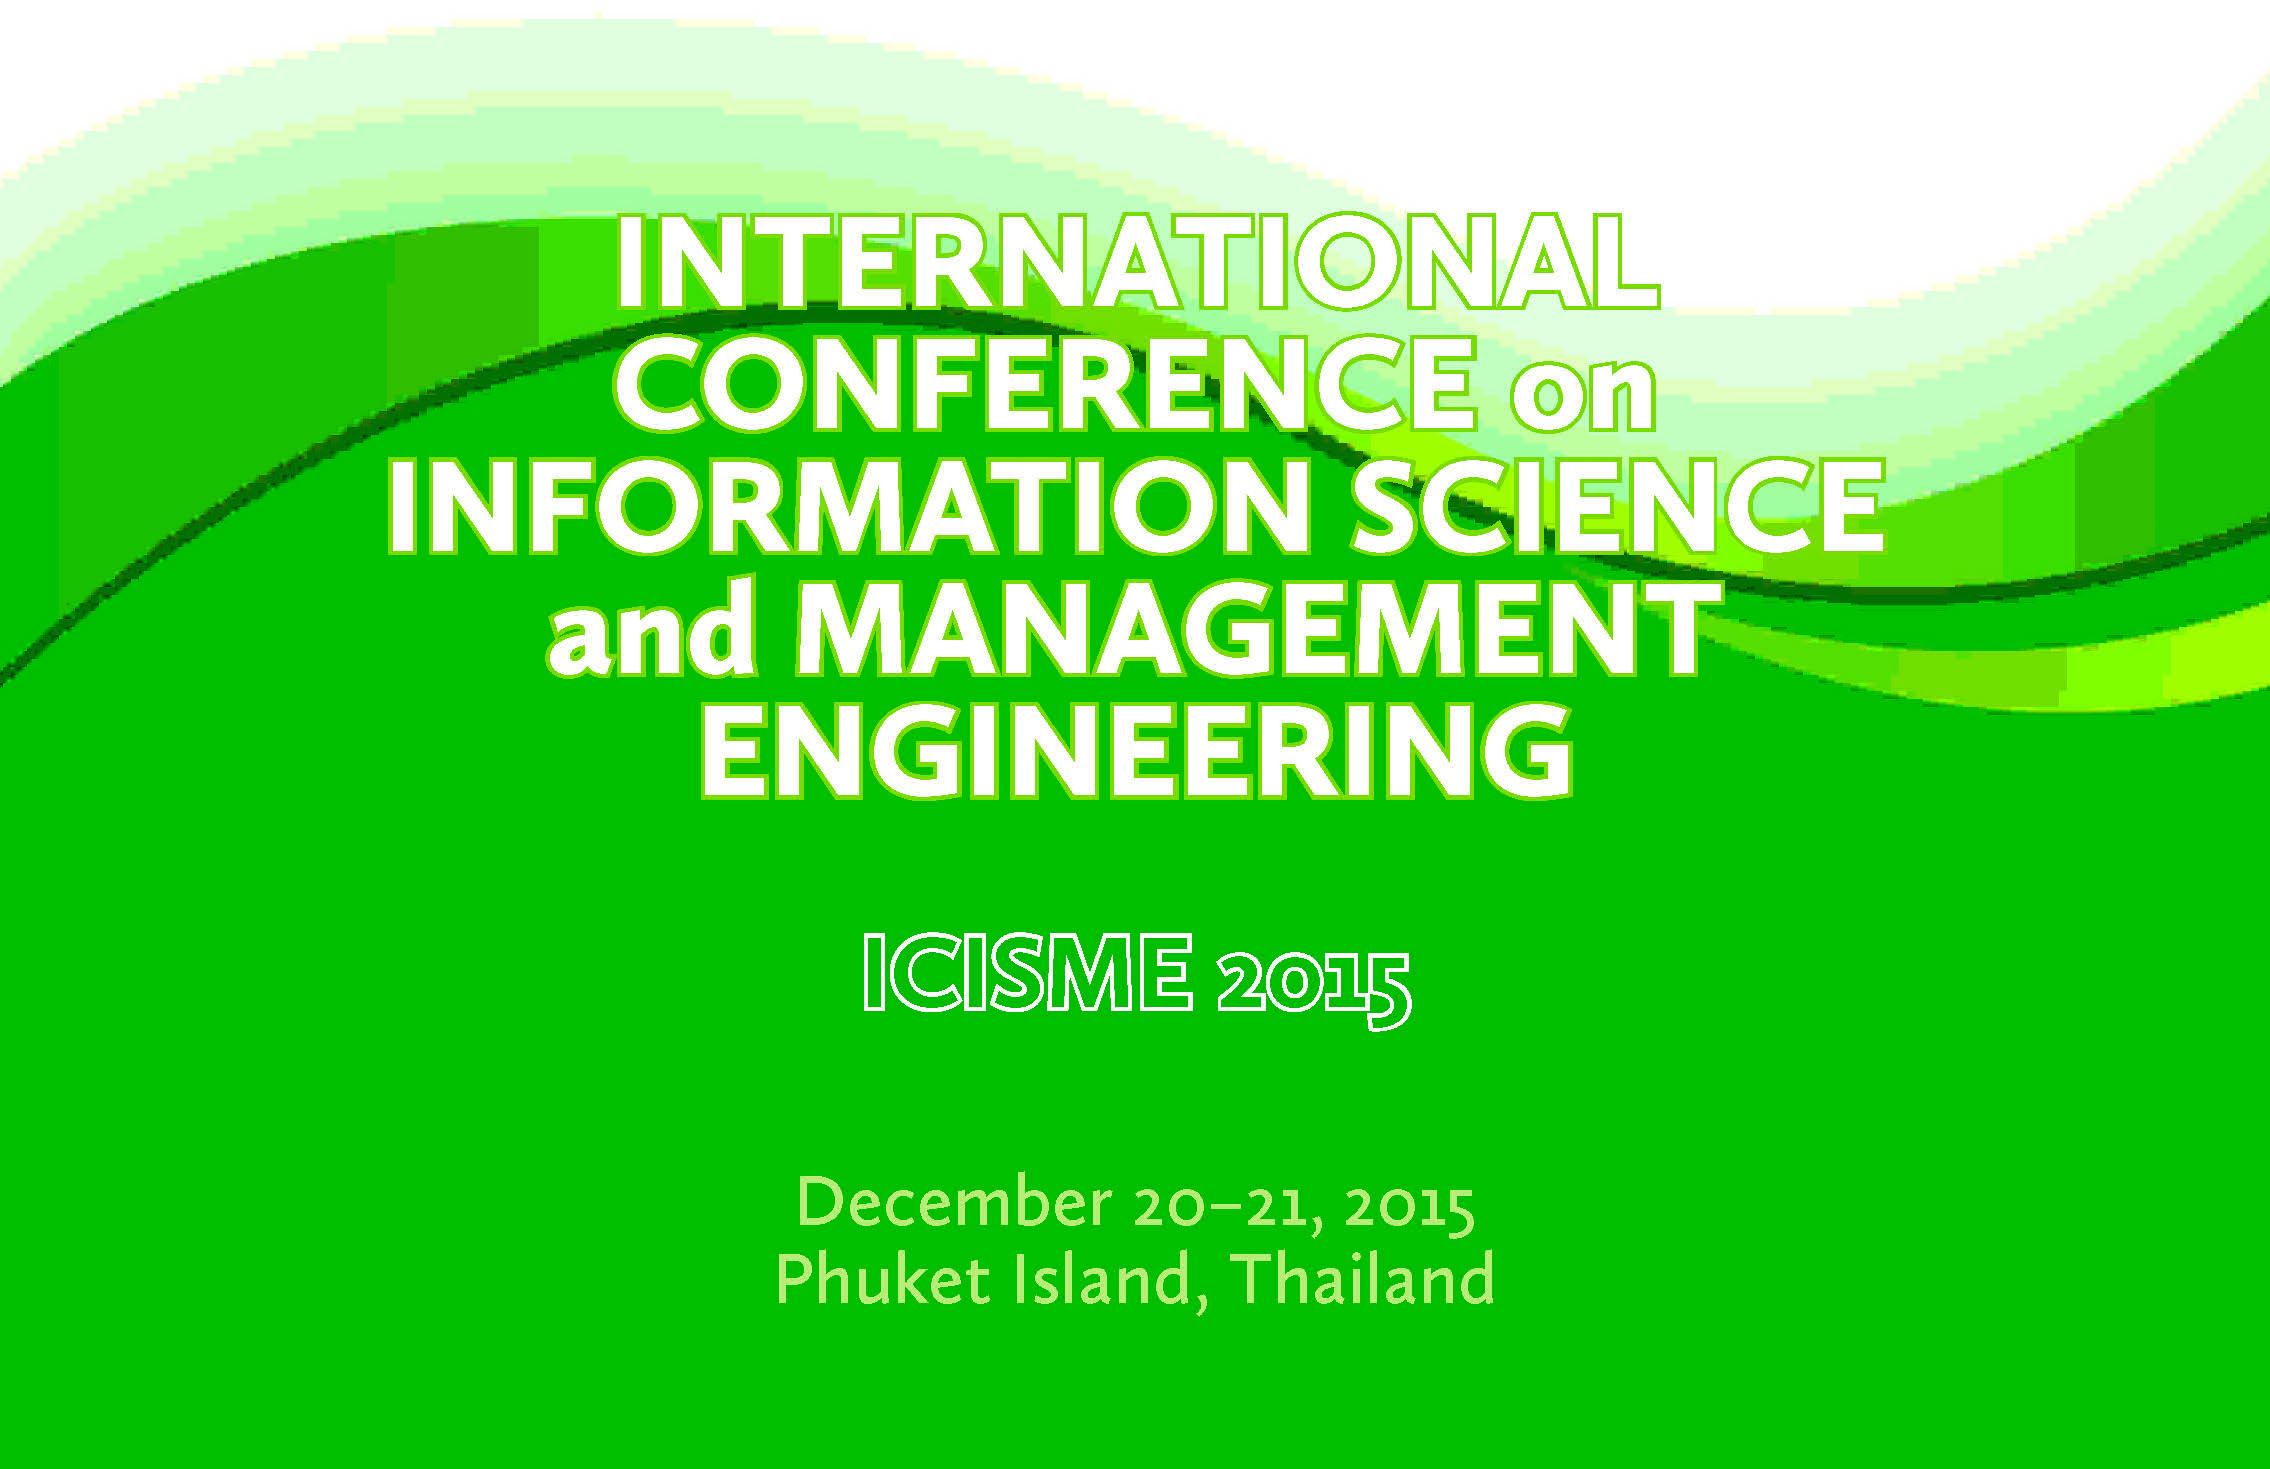 Icisme 2015 Destech Publishing Inc